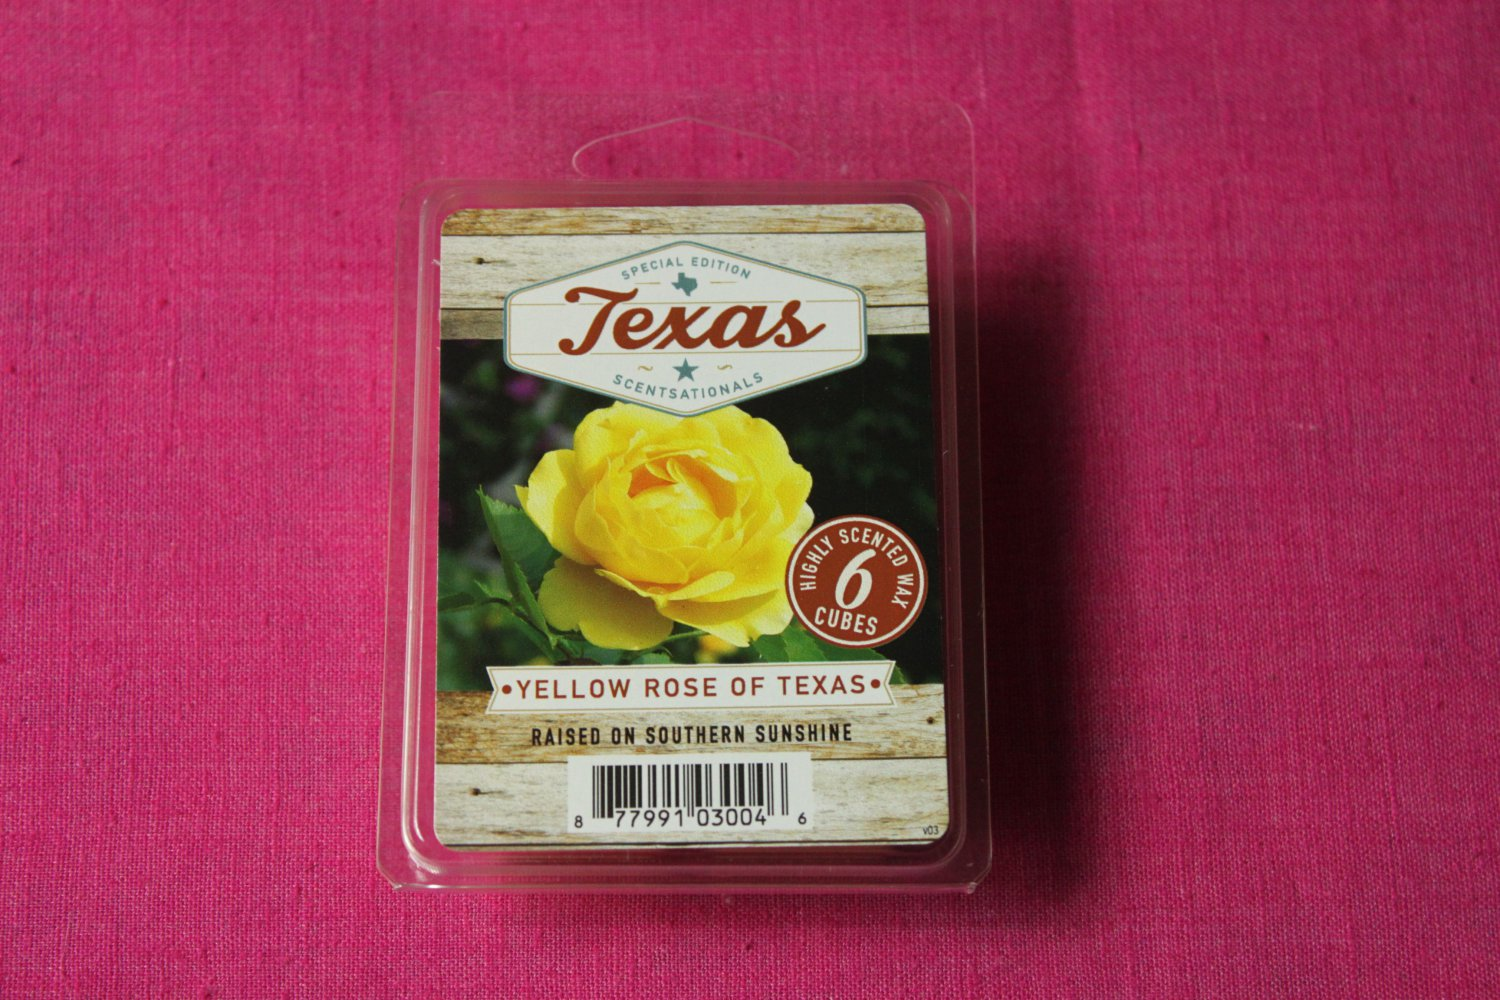 Scentsationals Yellow Rose of Texas Wax Melt Cubes Special Texas Edition